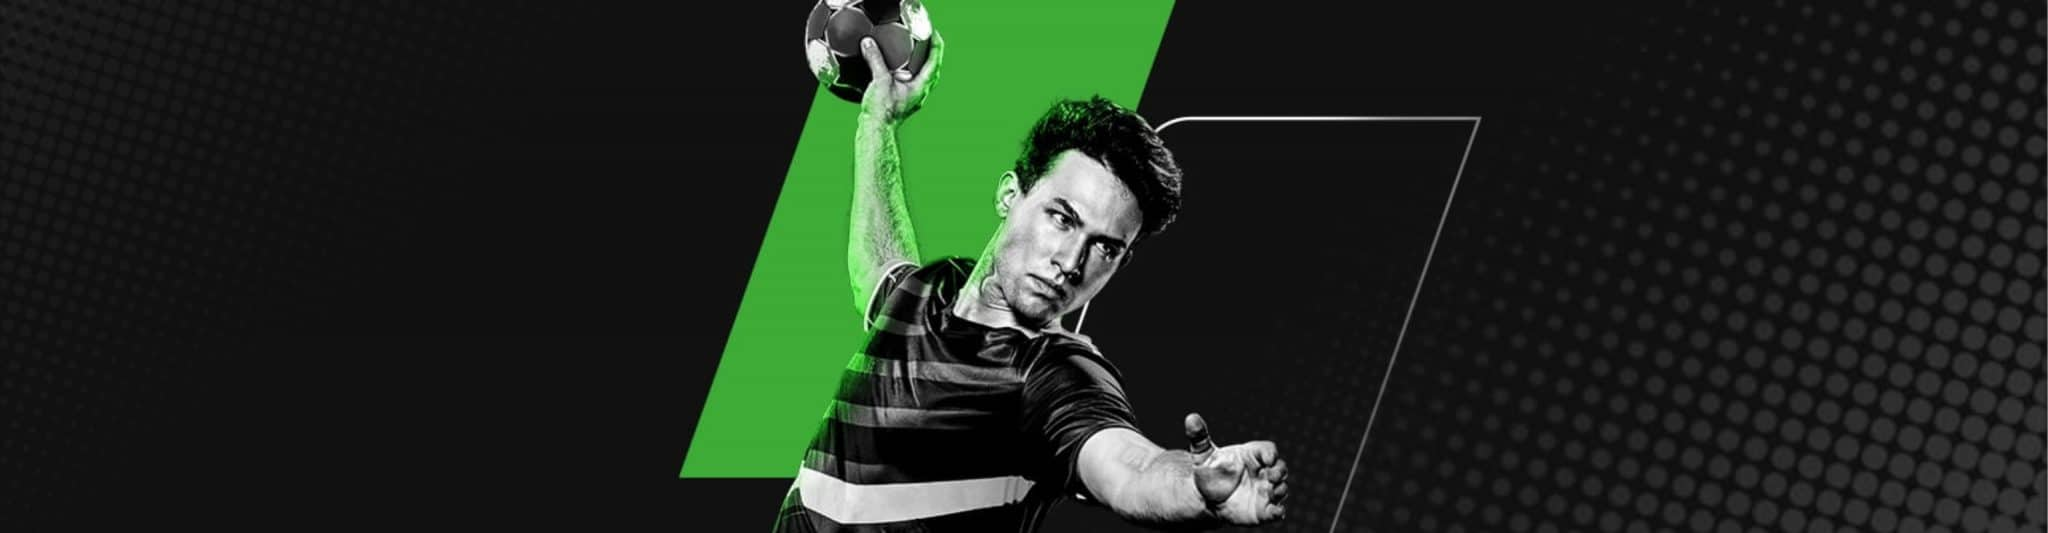 Weekly Tournaments and Massive Sports Promotions at Unibet